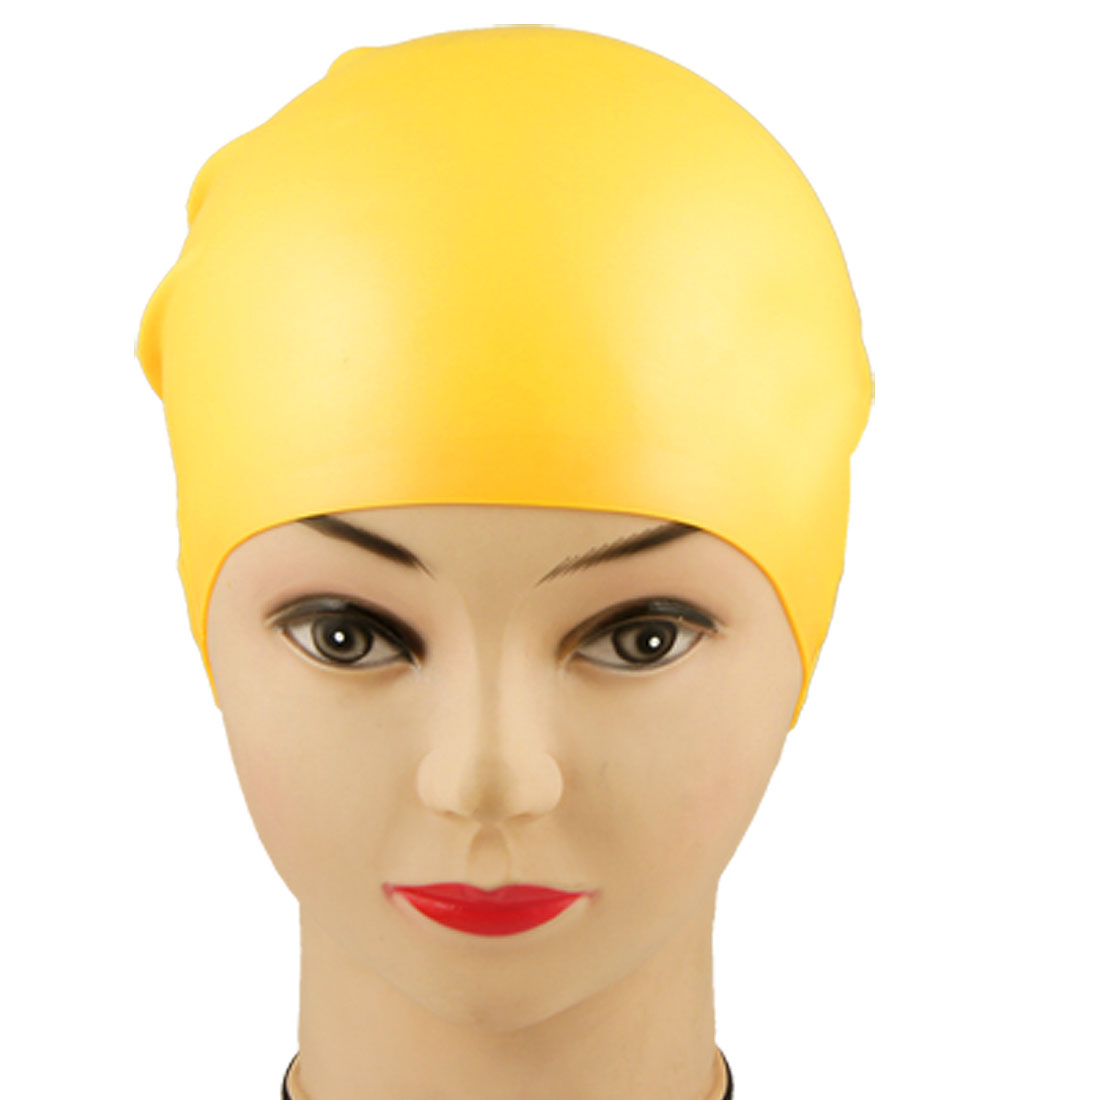 Adult Soft Silicone Dome Shape Flexible Swimming Cap Hat Yellow 21.8 x 19cm